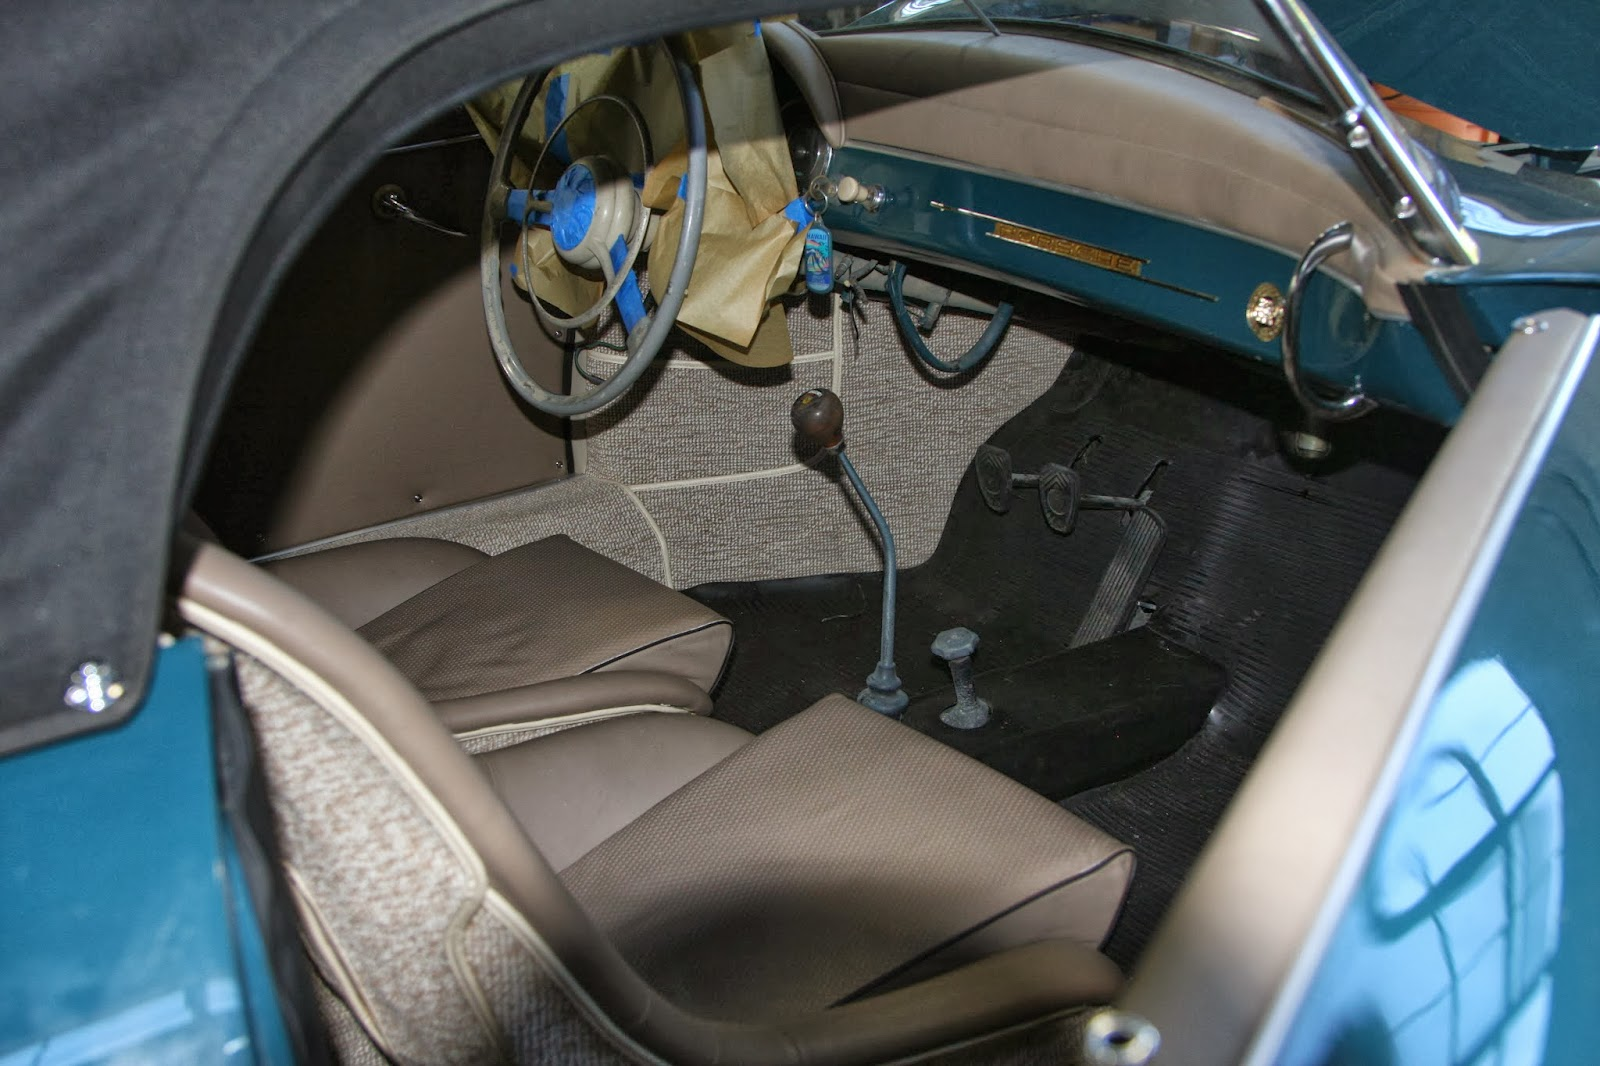 Cooks Upholstery And Classic Restoration Auto Upholstery Bay Area Porsche 356 Steering Wheel